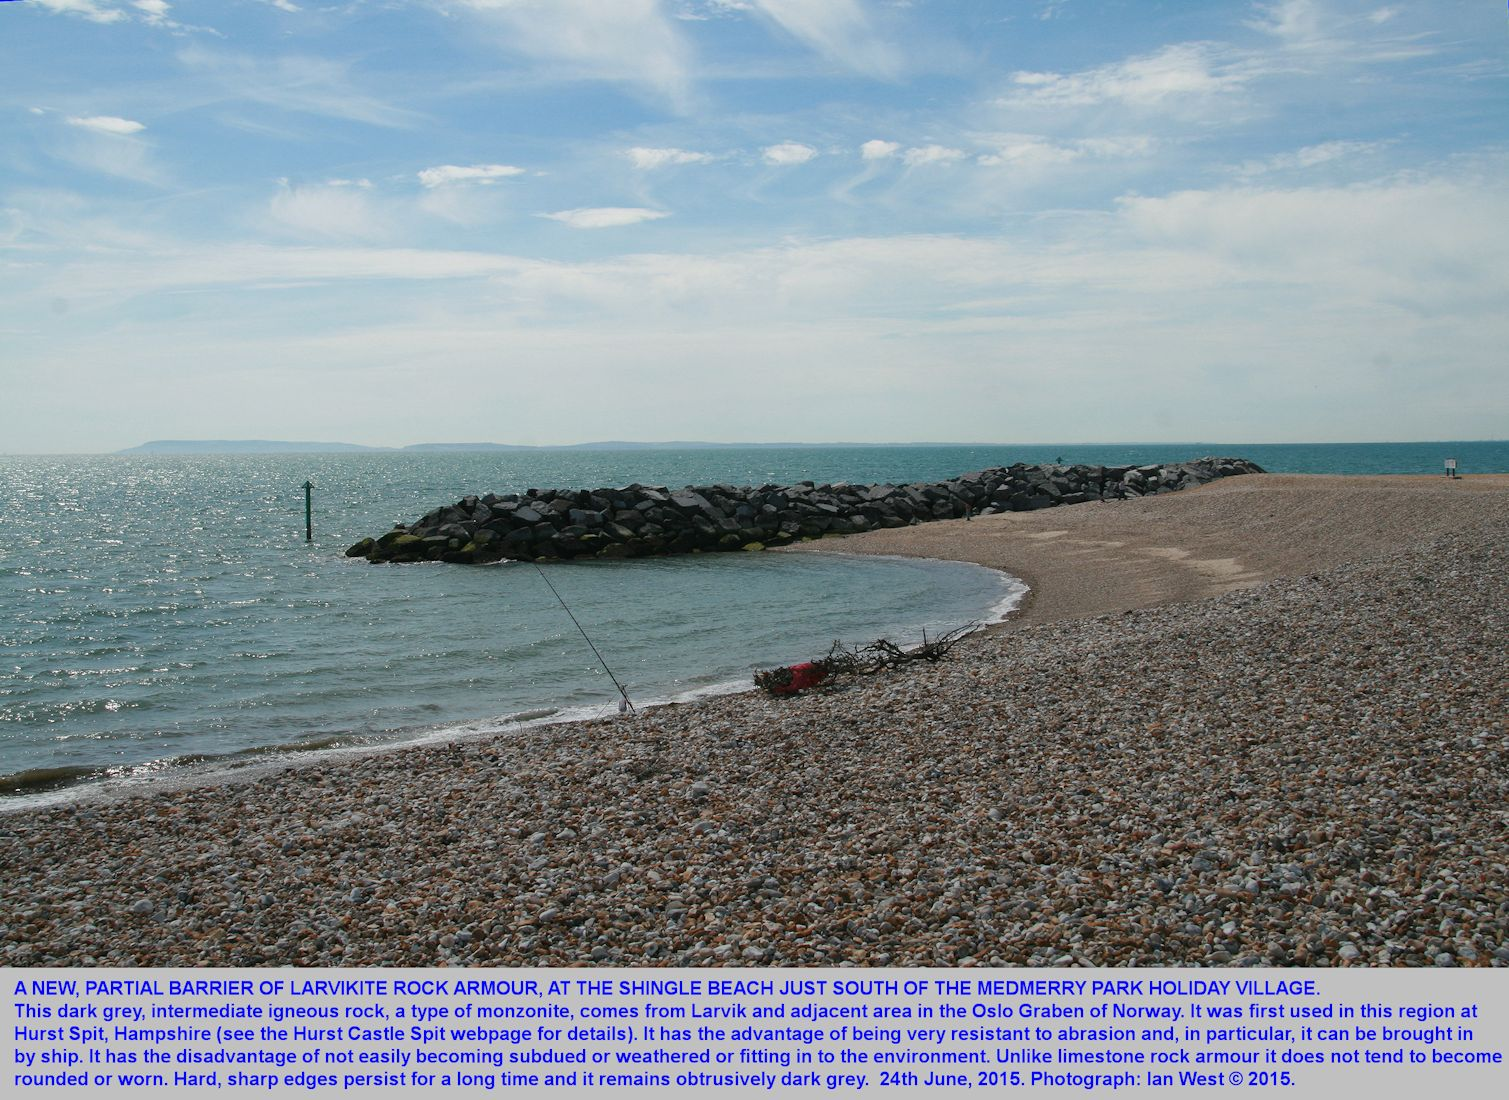 The southern of the two groynes of dark grey larvikite on the beach near Medmerry Park Holiday Village,  Bracklesham Bay, Sussex, 24th June 2015